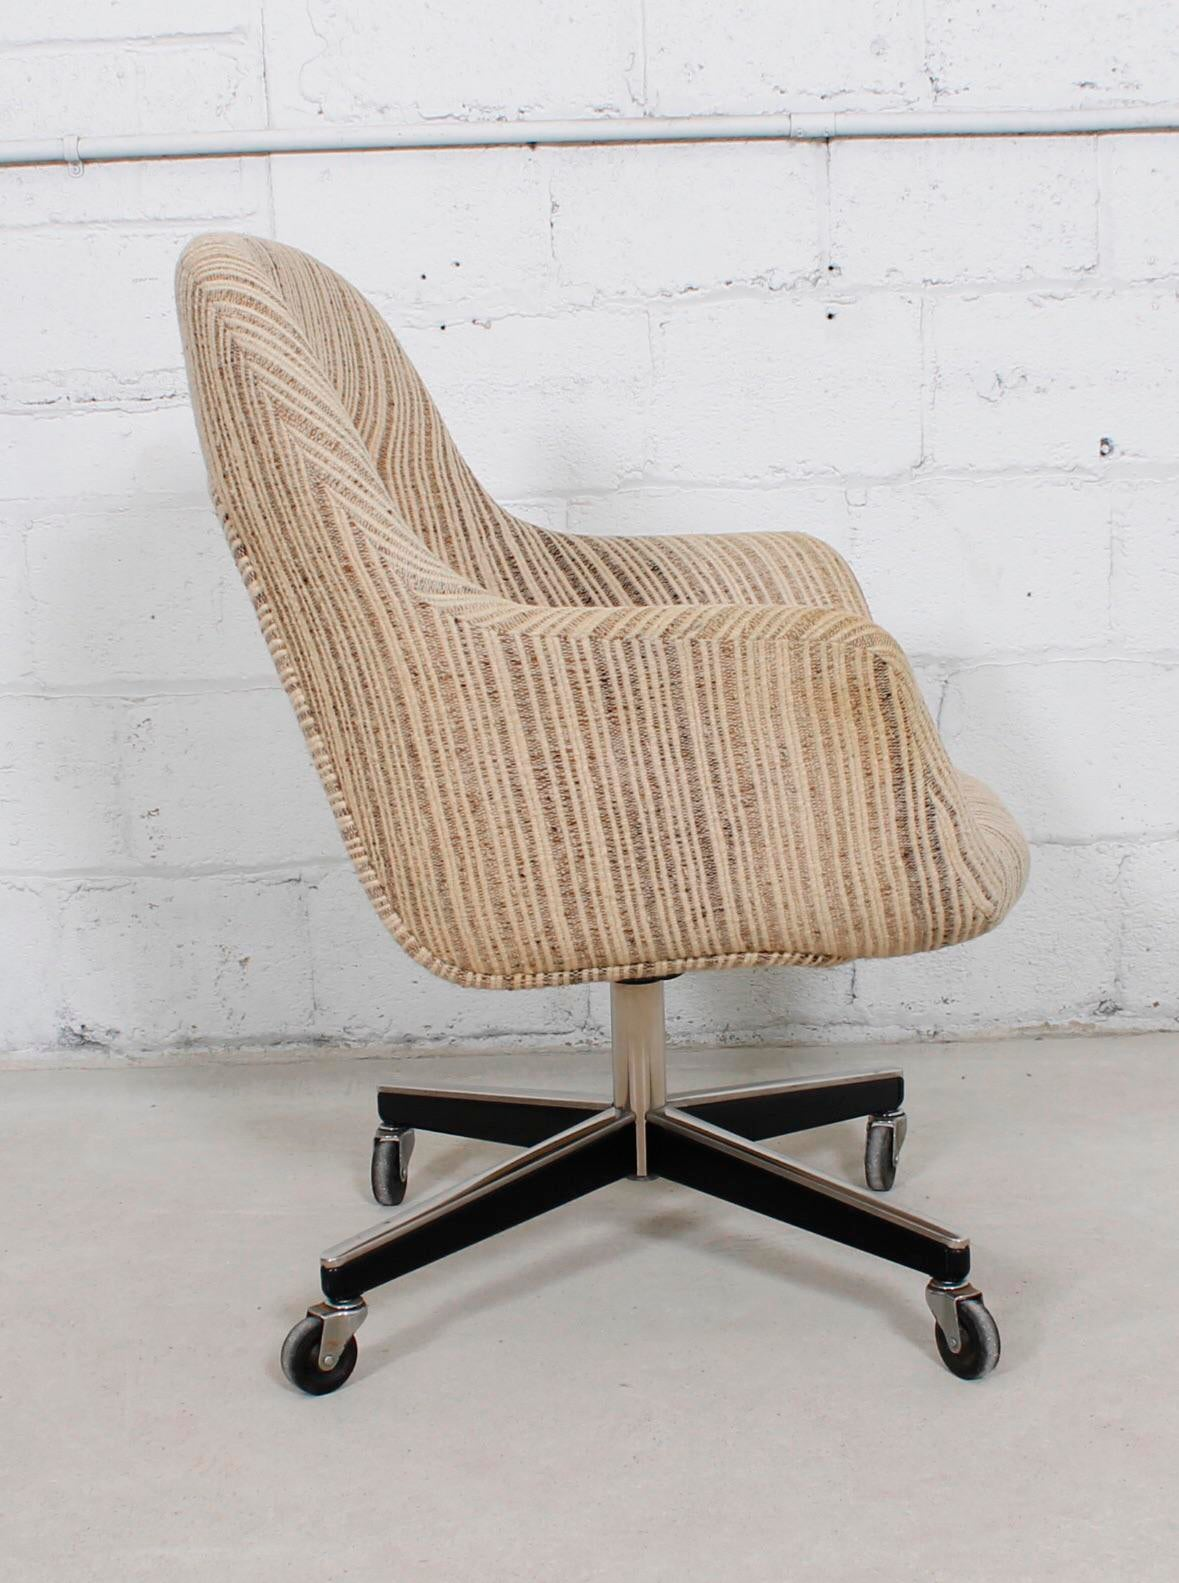 upholstered office chairs. Wonderful Office Knoll Upholstered Office Chairs On Casters  A Pair Image 6 Of 11 Inside